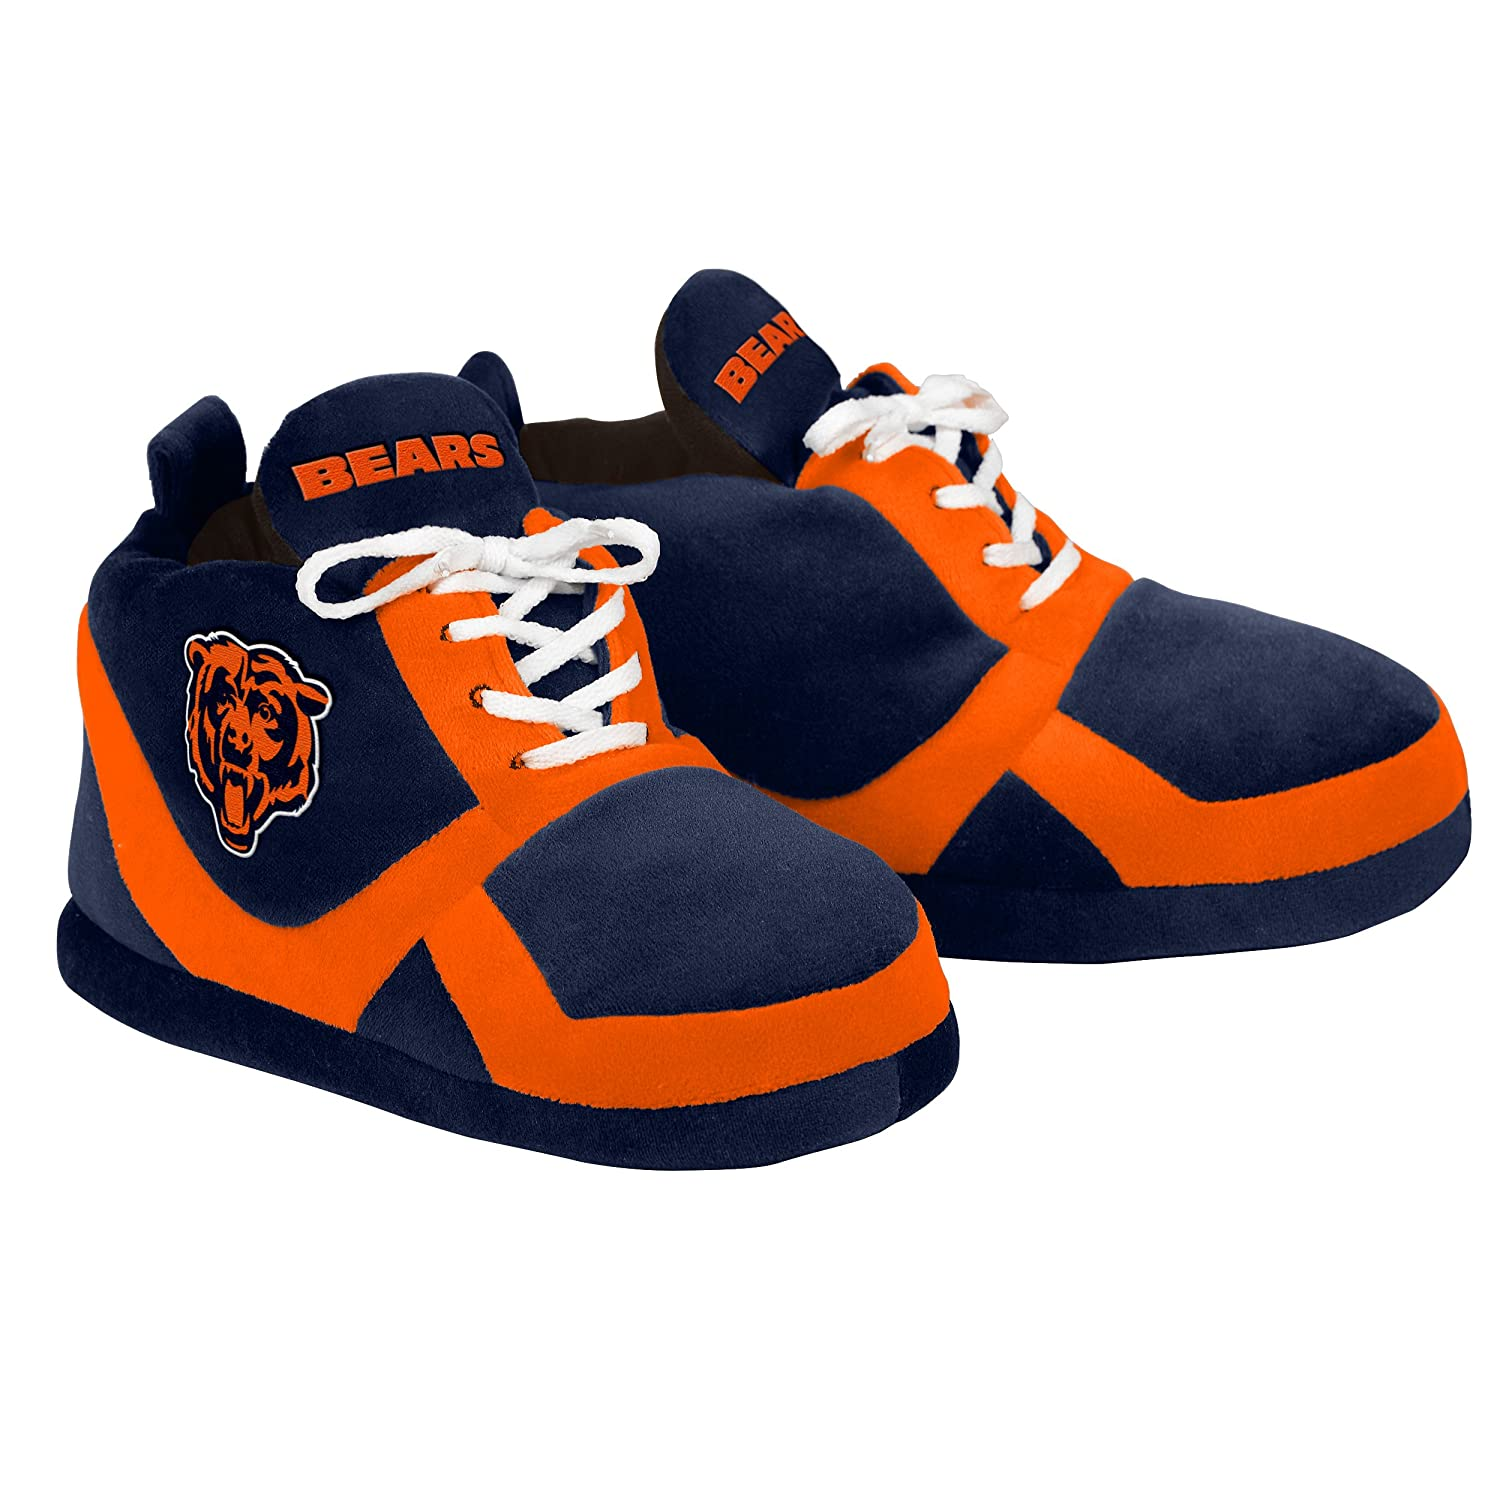 Chicago Bears 2015 Sneaker Slipper Medium